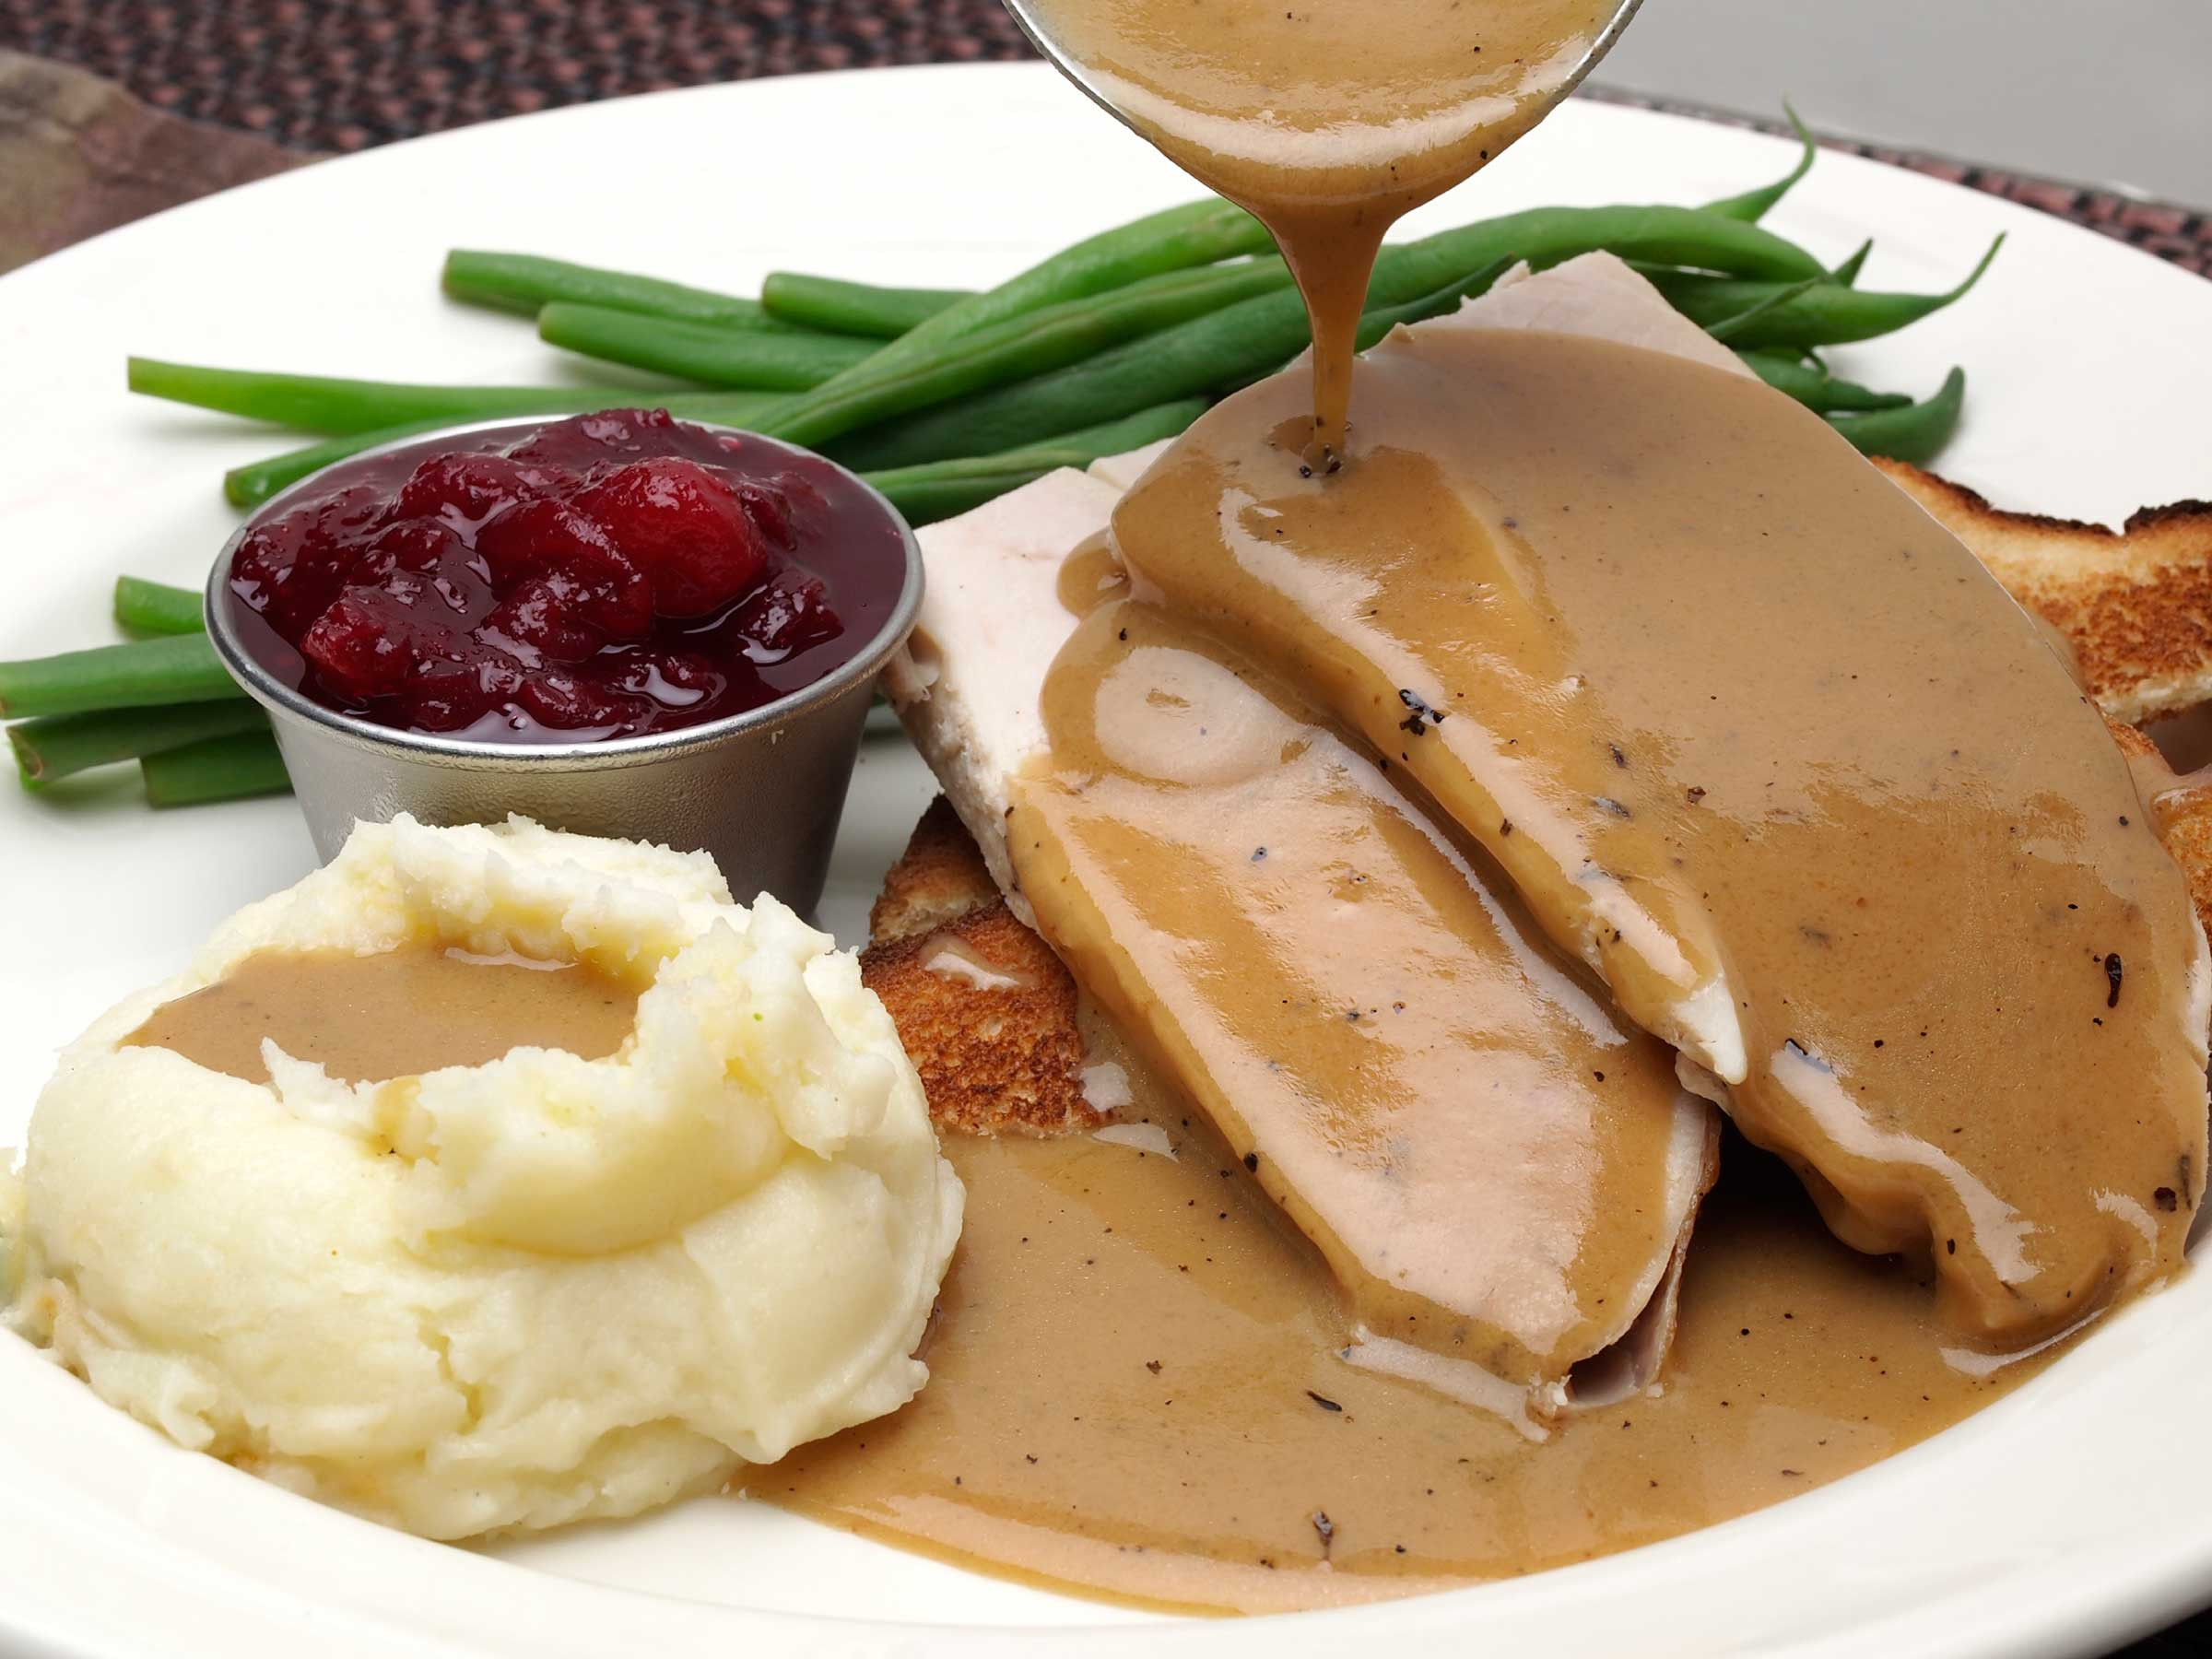 Gluten Free Turkey Gravy  20 Most Asked Thanksgiving Questions Answered in 20 Words